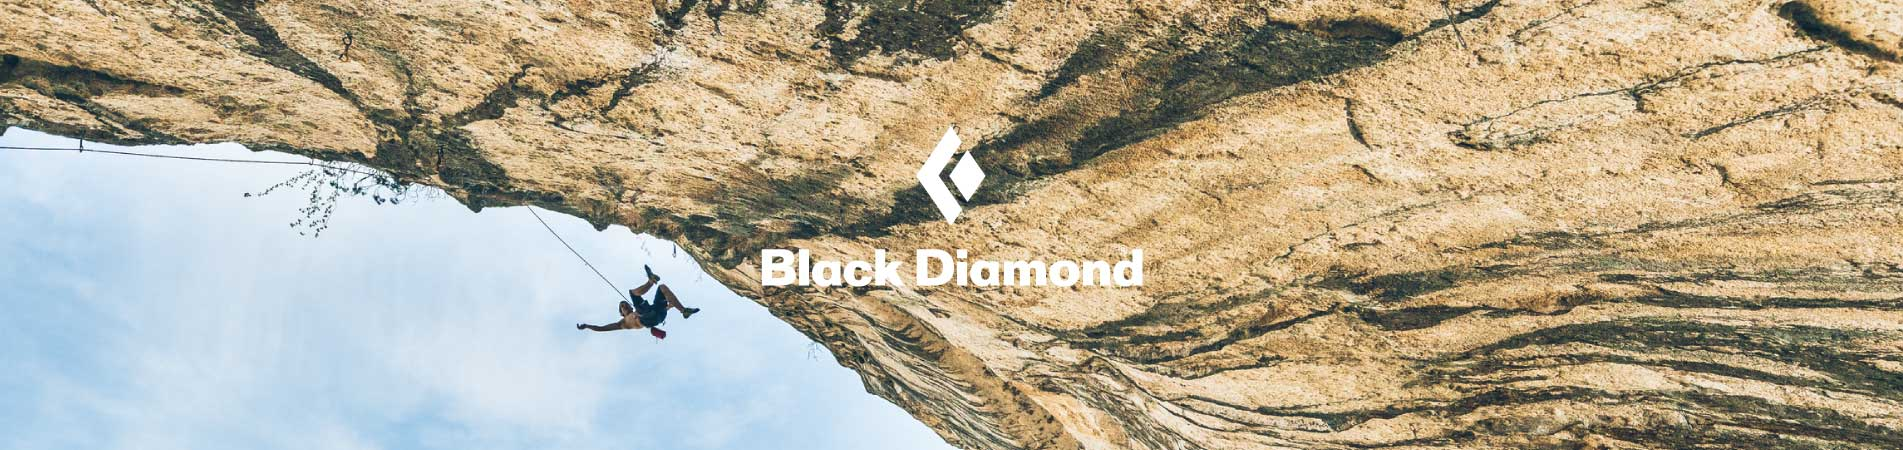 black-diamond-brand-banner-v1r3.jpg